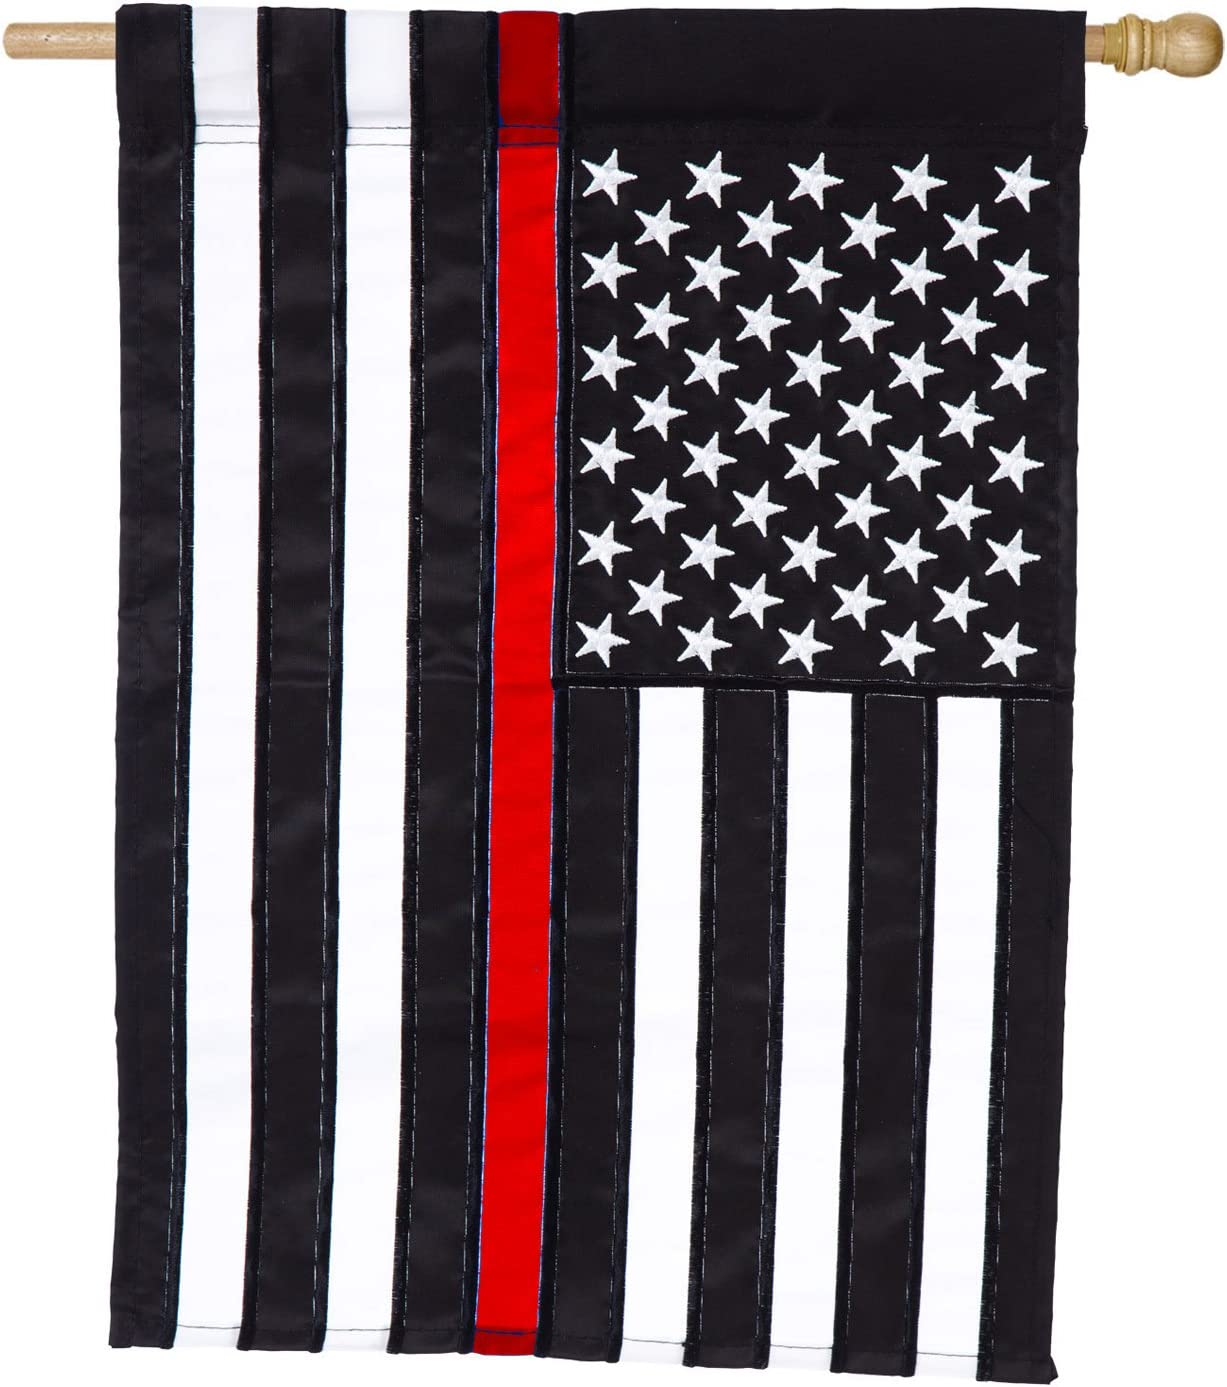 Evergreen Flag Thin Red Line Applique House Flag - 28 x 44 Inches Outdoor Decor for Homes and Gardens